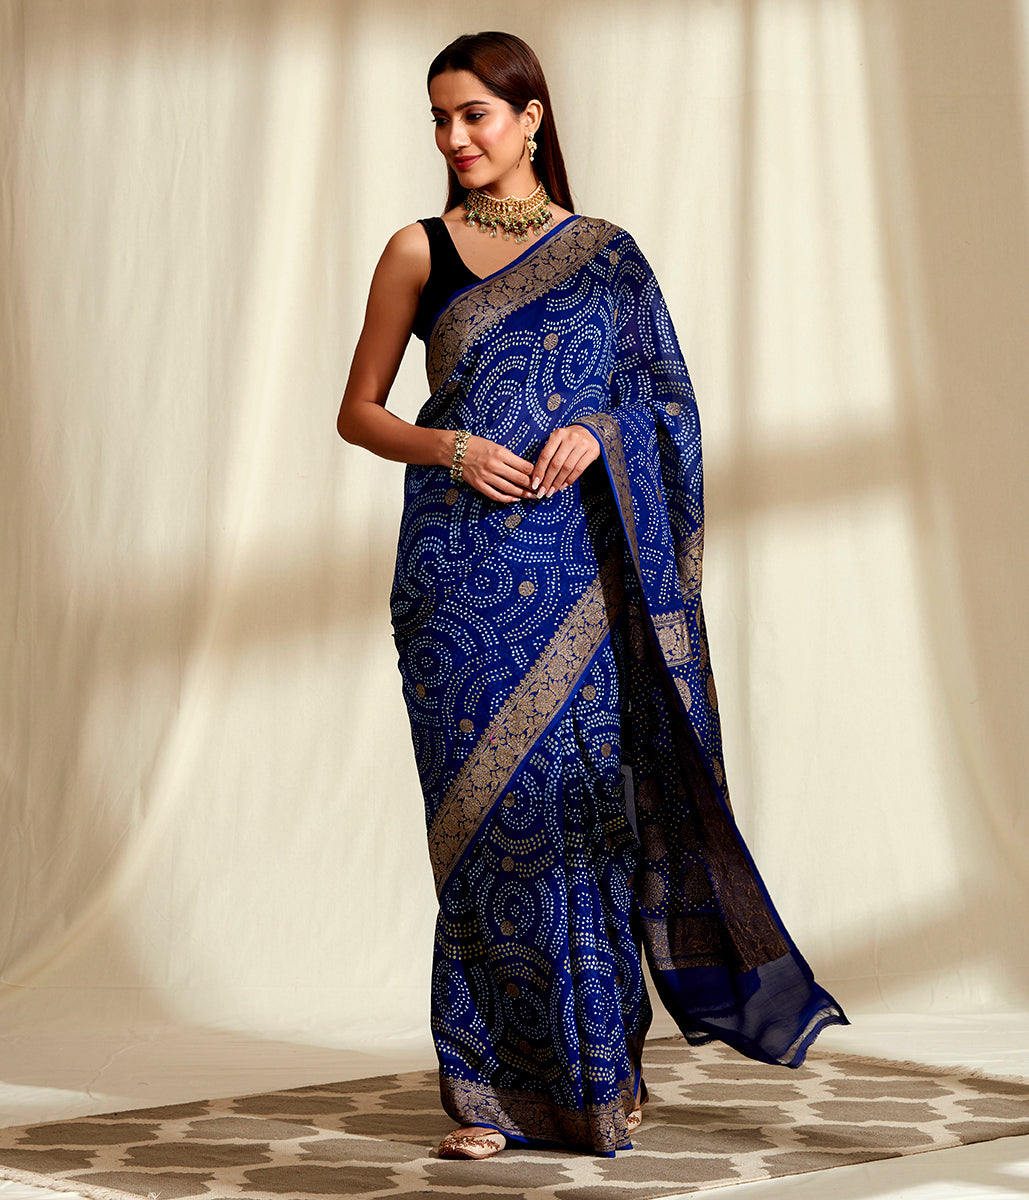 Handwoven Banarasi Bandhej Saree in Blue with Gold Zari Weave